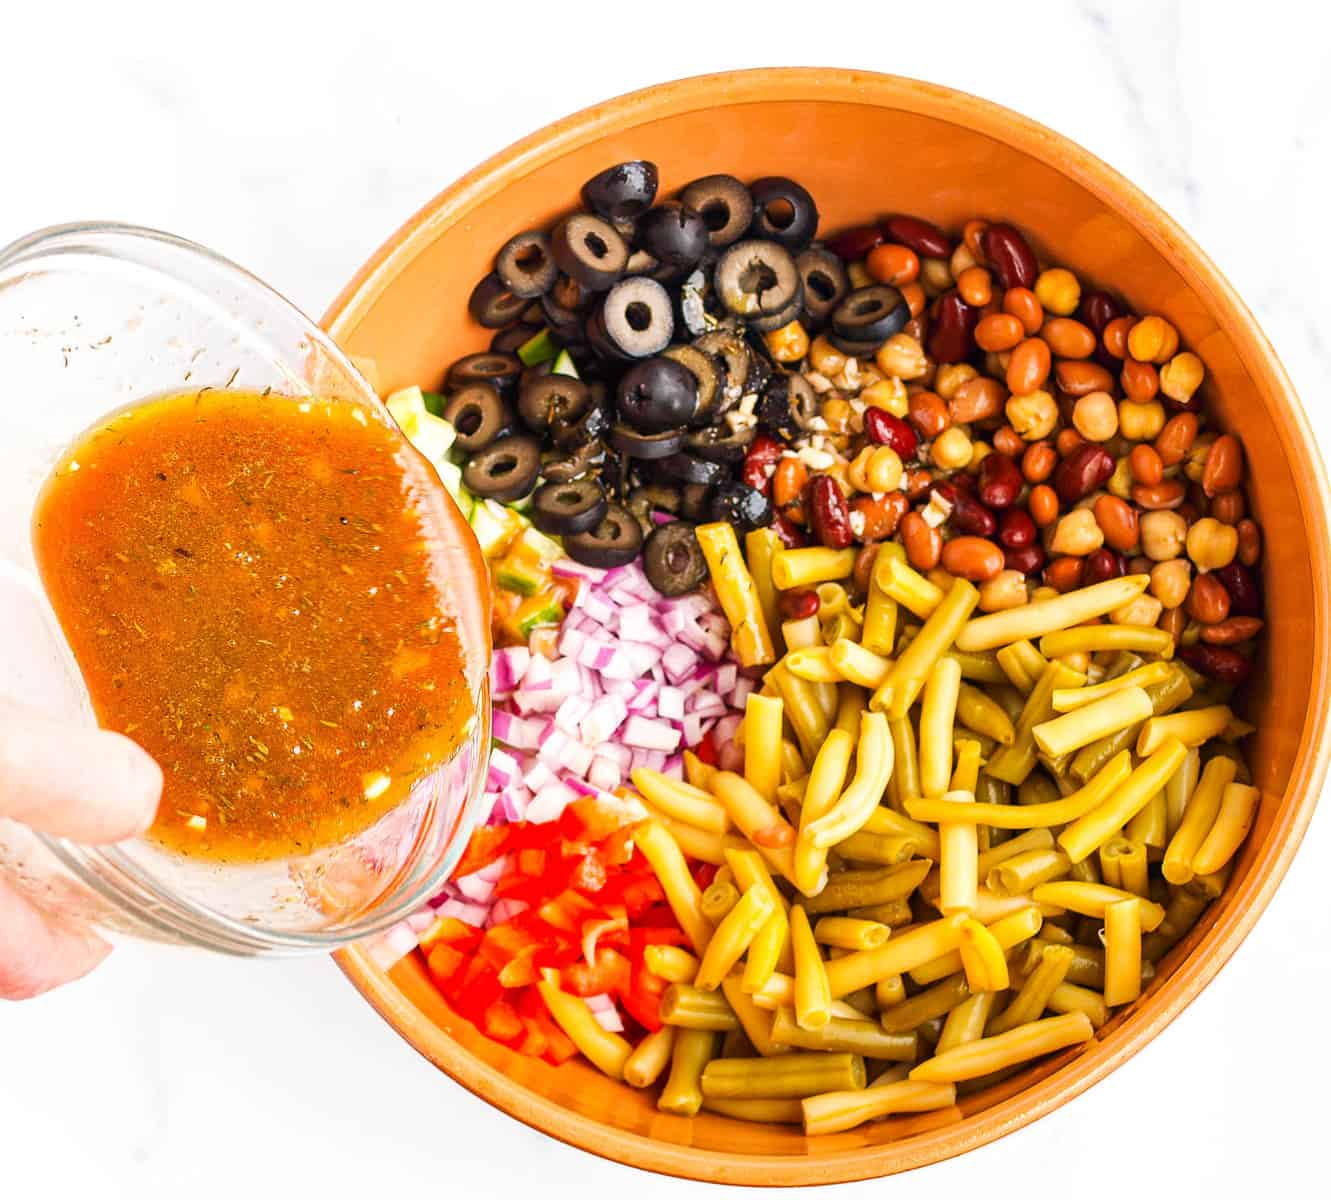 Pouring the dressing over the veggies and beans